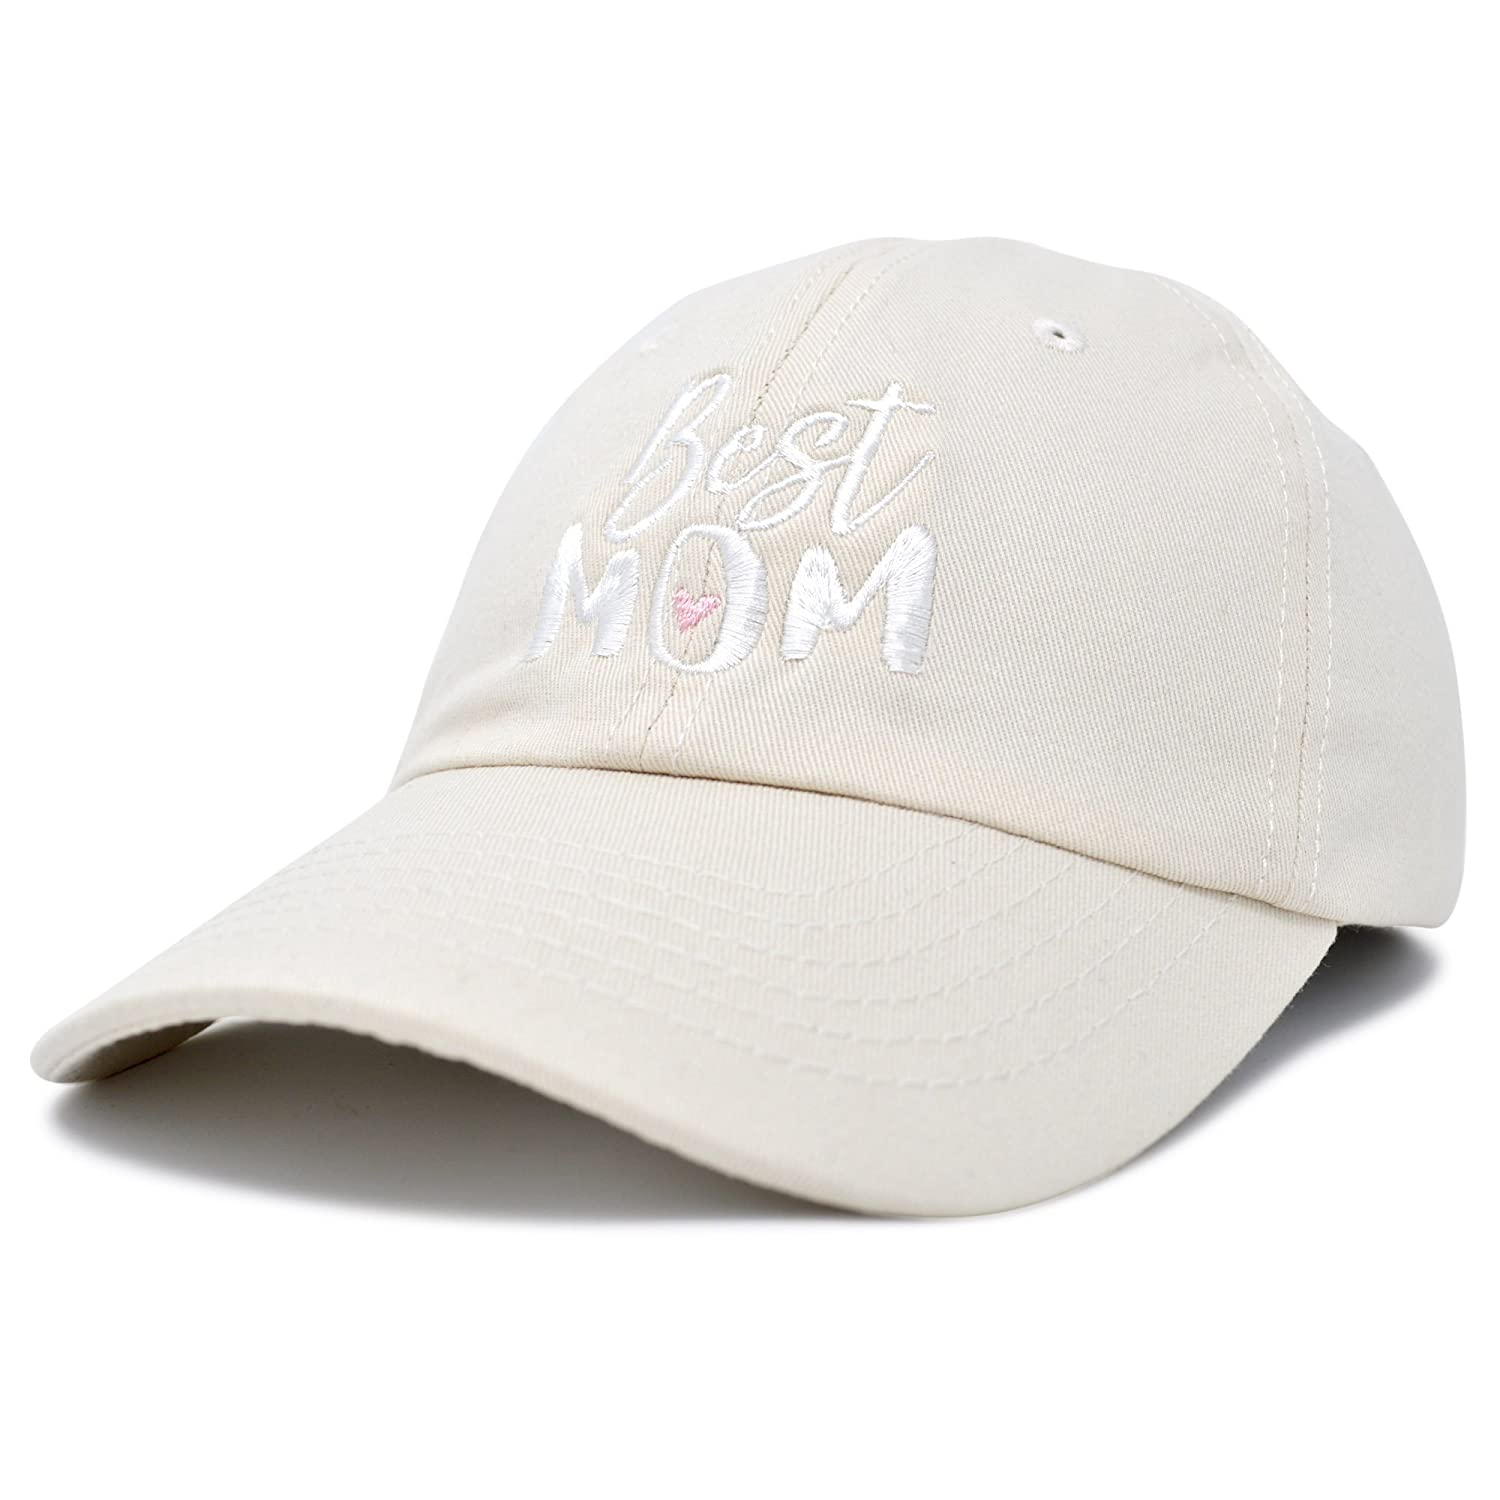 816b68d131b Amazon.com: DALIX Best Mom Baseball Cap Womens Dad Hats Adjustable Mothers  Day Hat Beige: Clothing